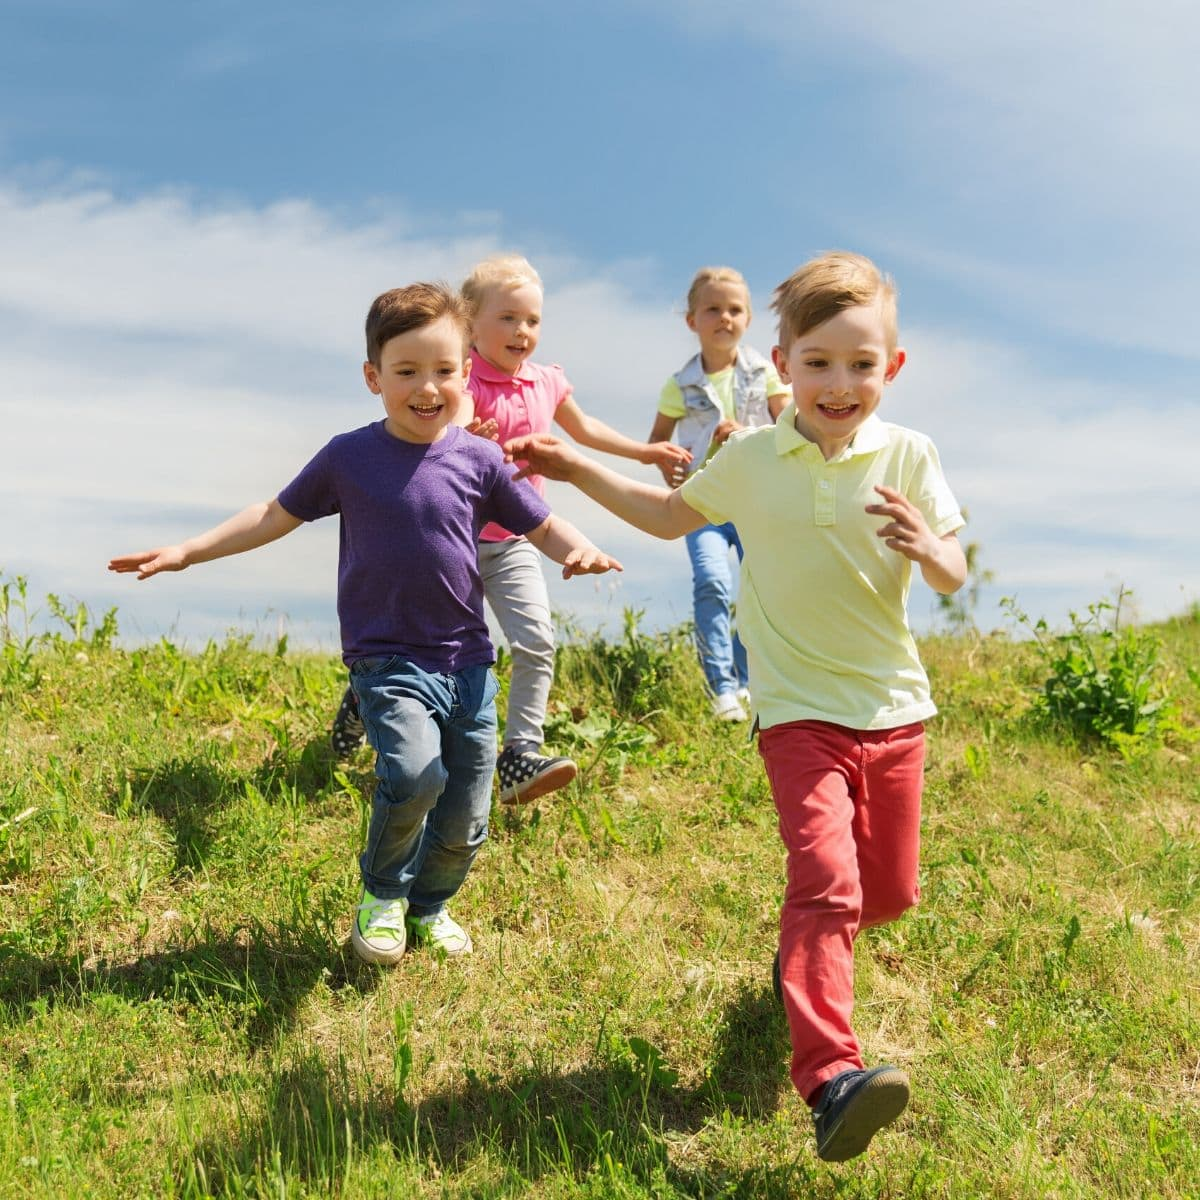 4 kids running in a field with big smiles